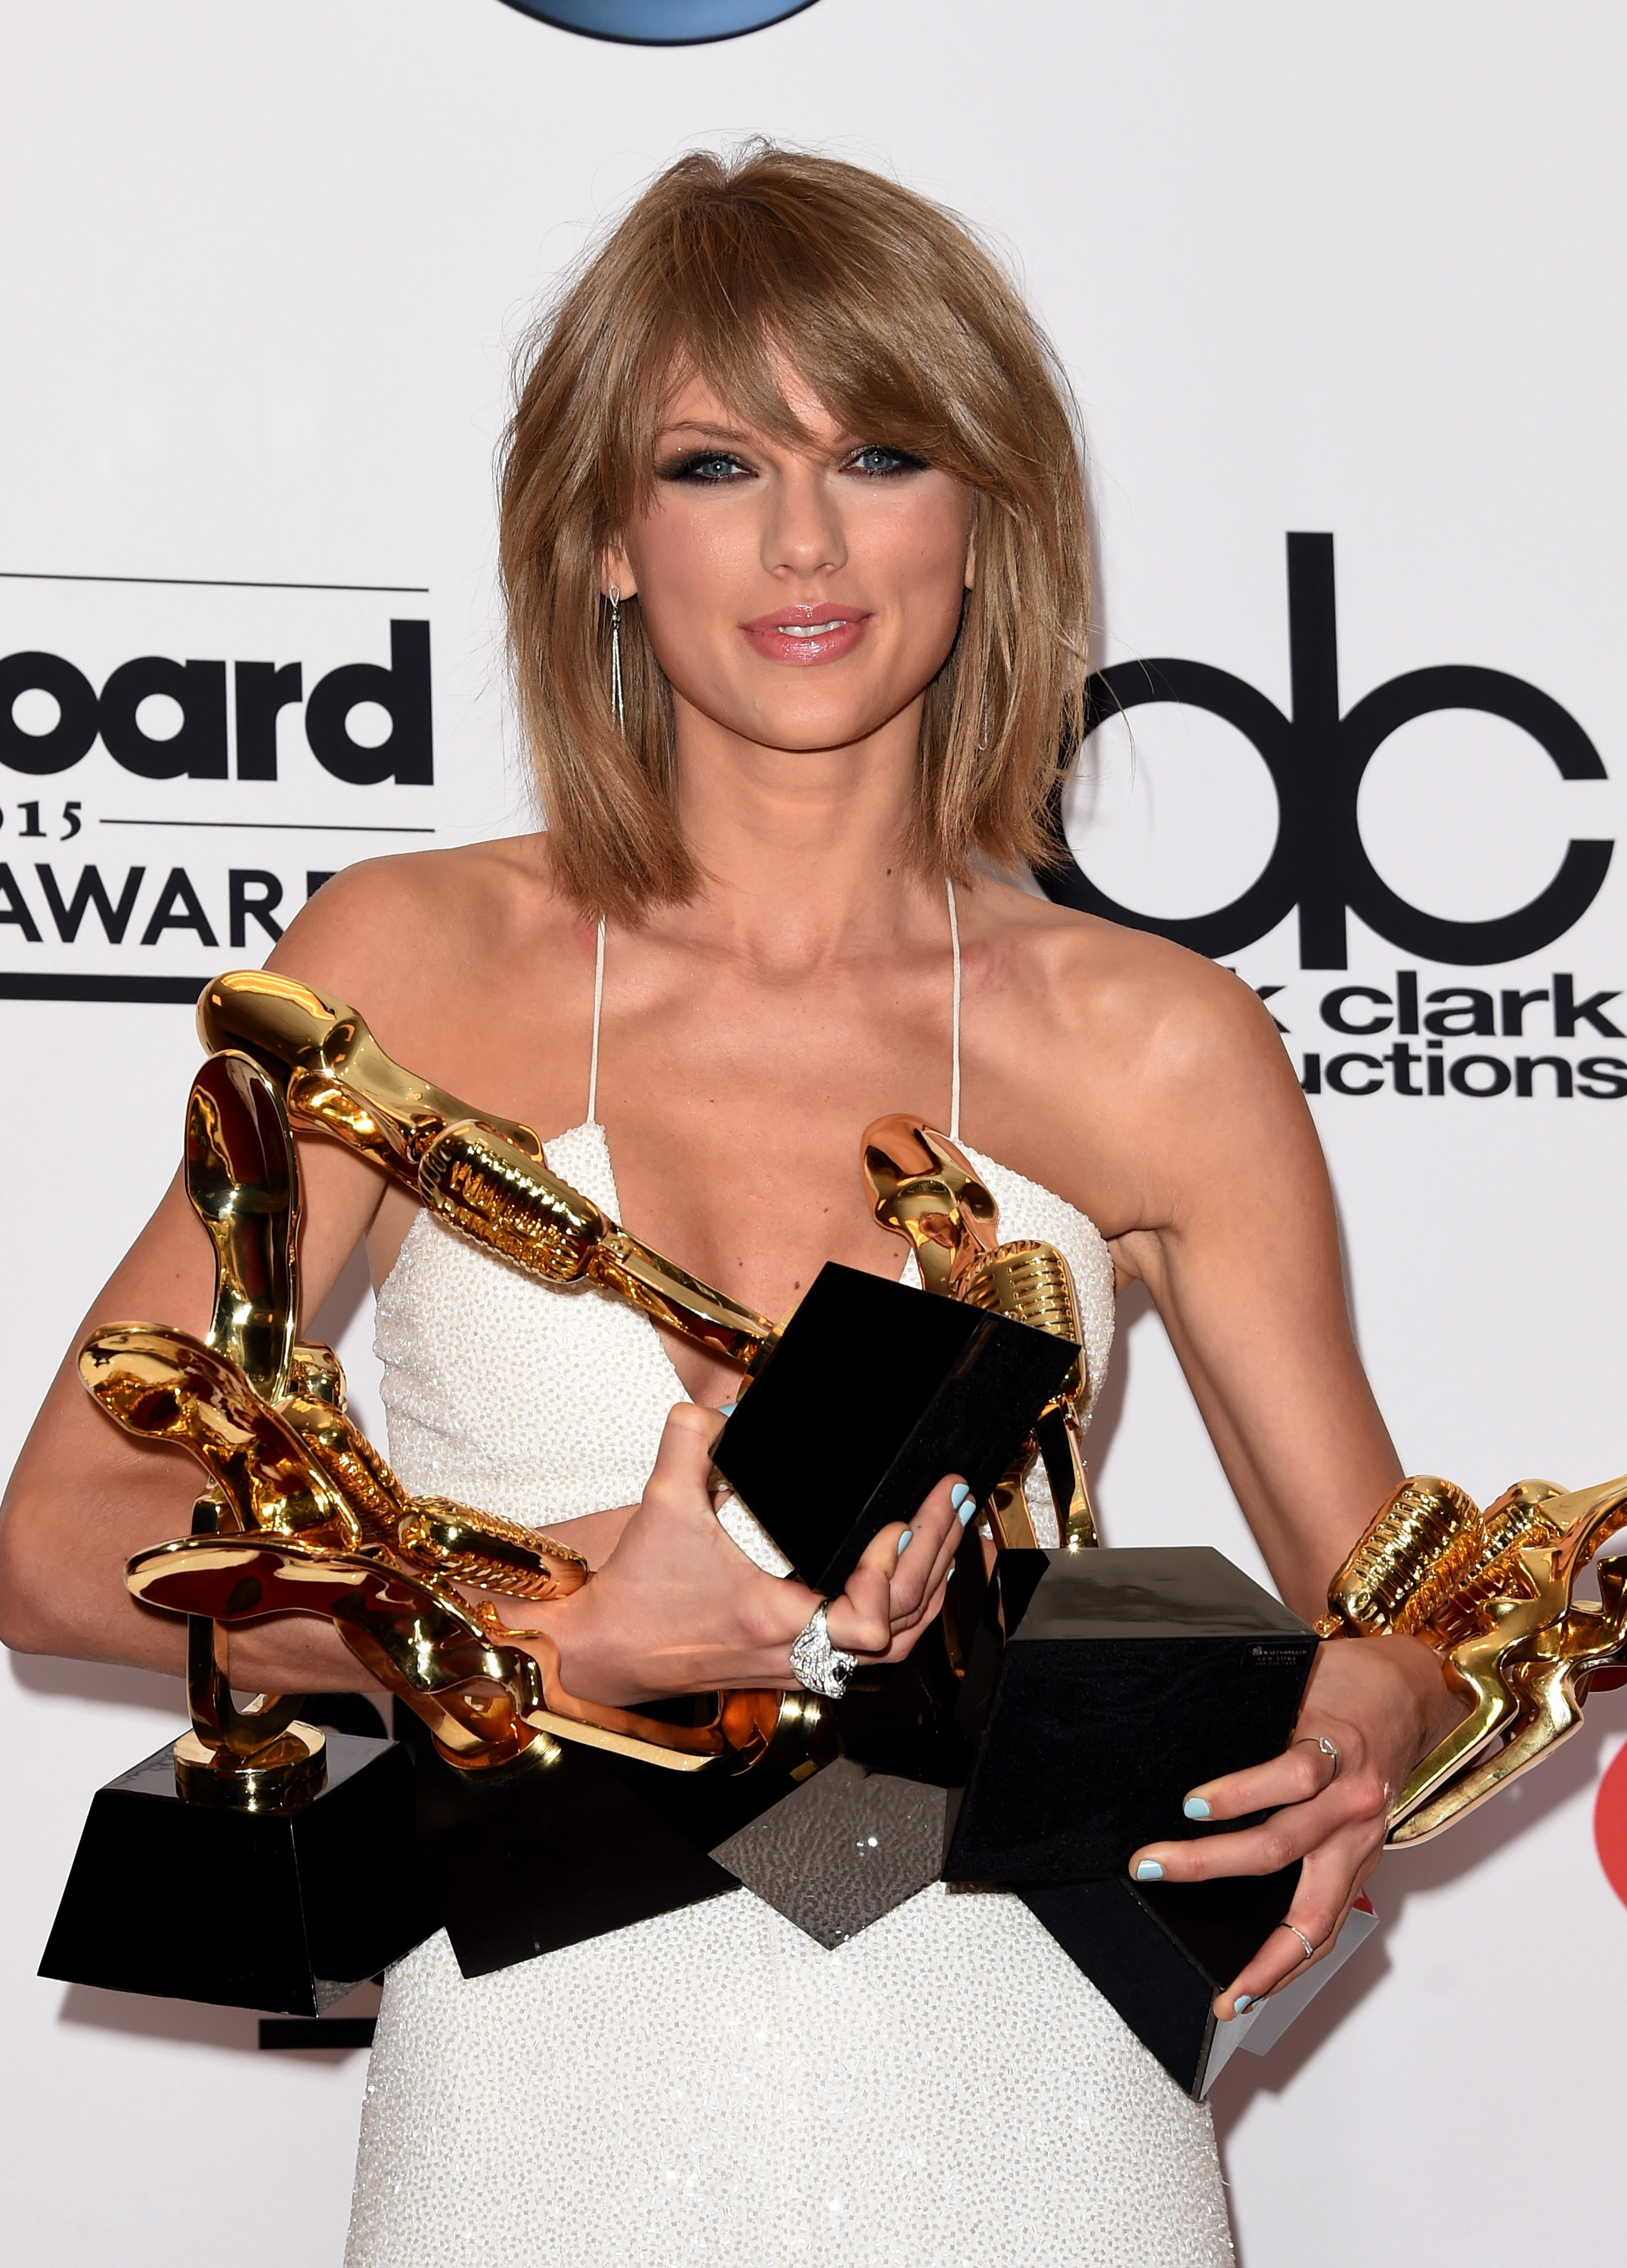 2015 BillboarTylor Swift Billboard Awards